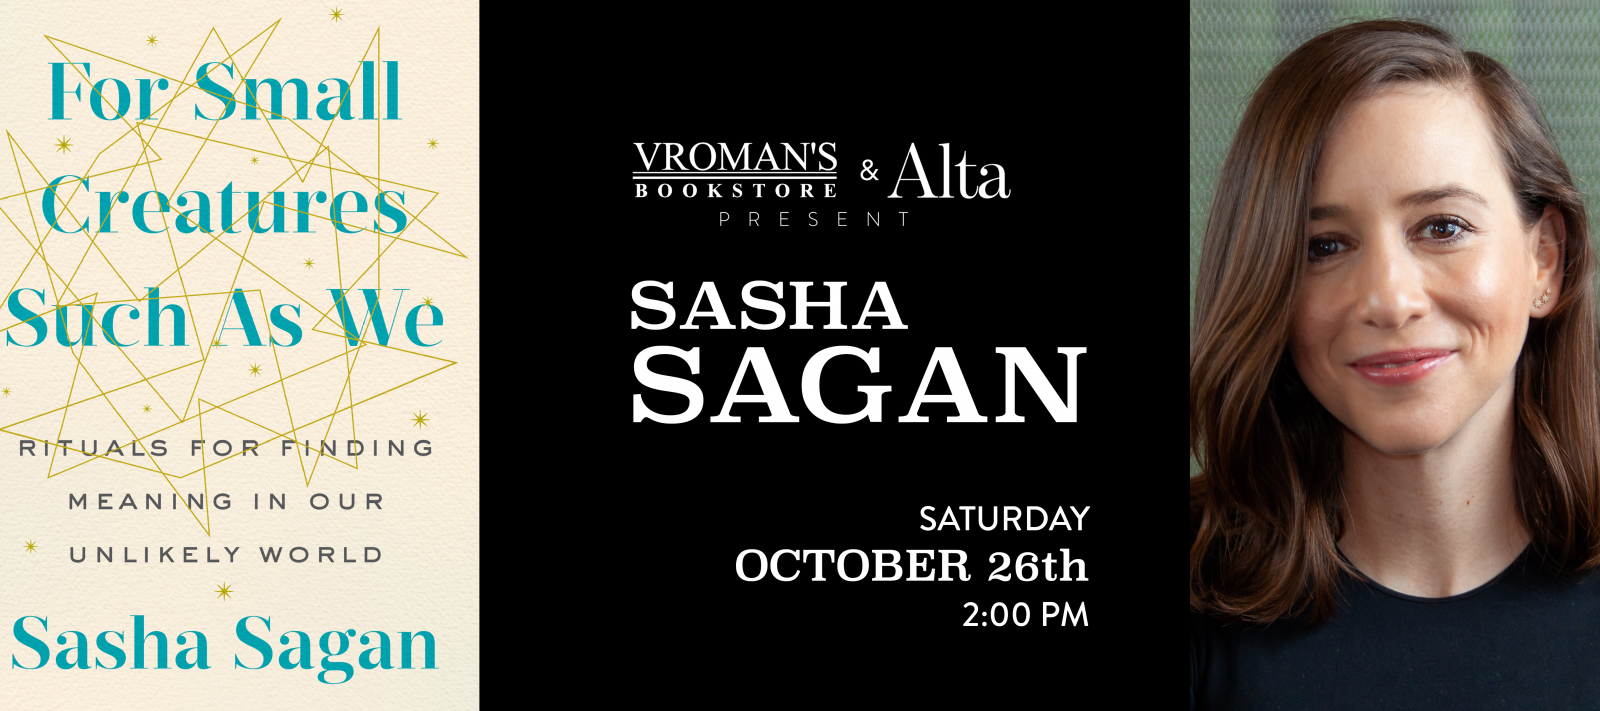 Sasha Sagan book signing Saturday October 26 at 2pm